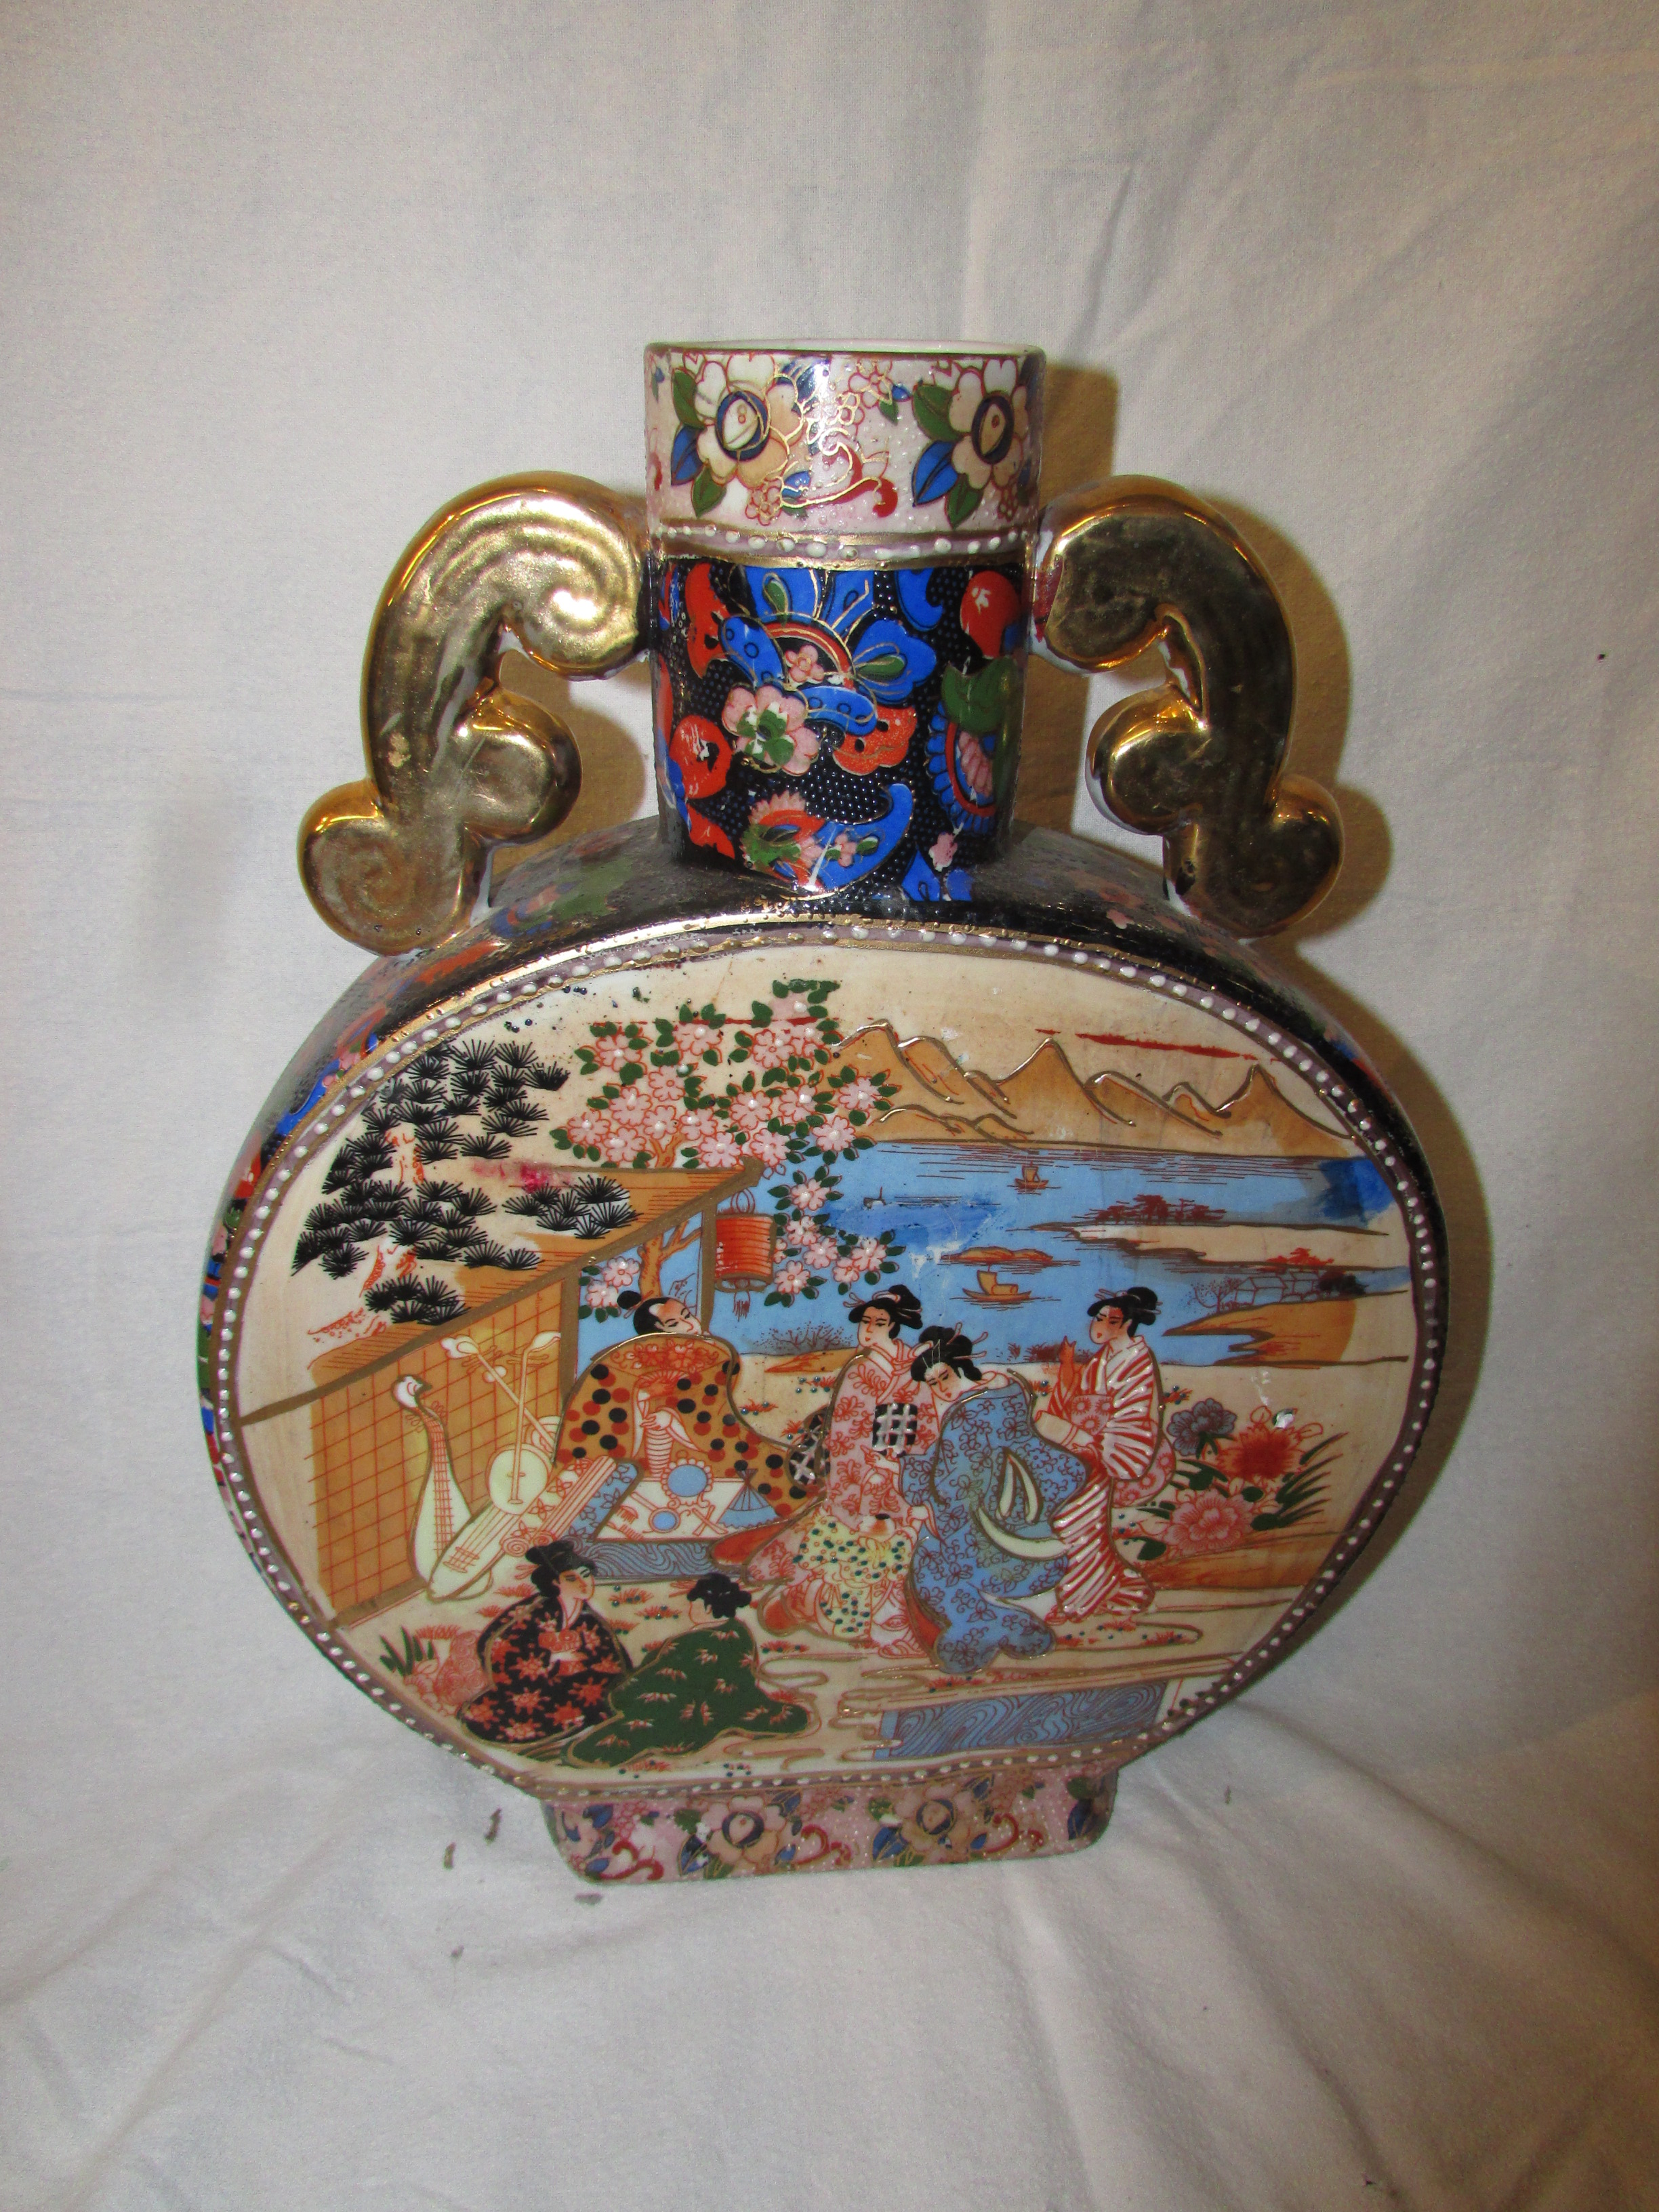 Lot 22 - 20th century Chinese porcelain moon flask, transfer decorated with figures in garden scenes,